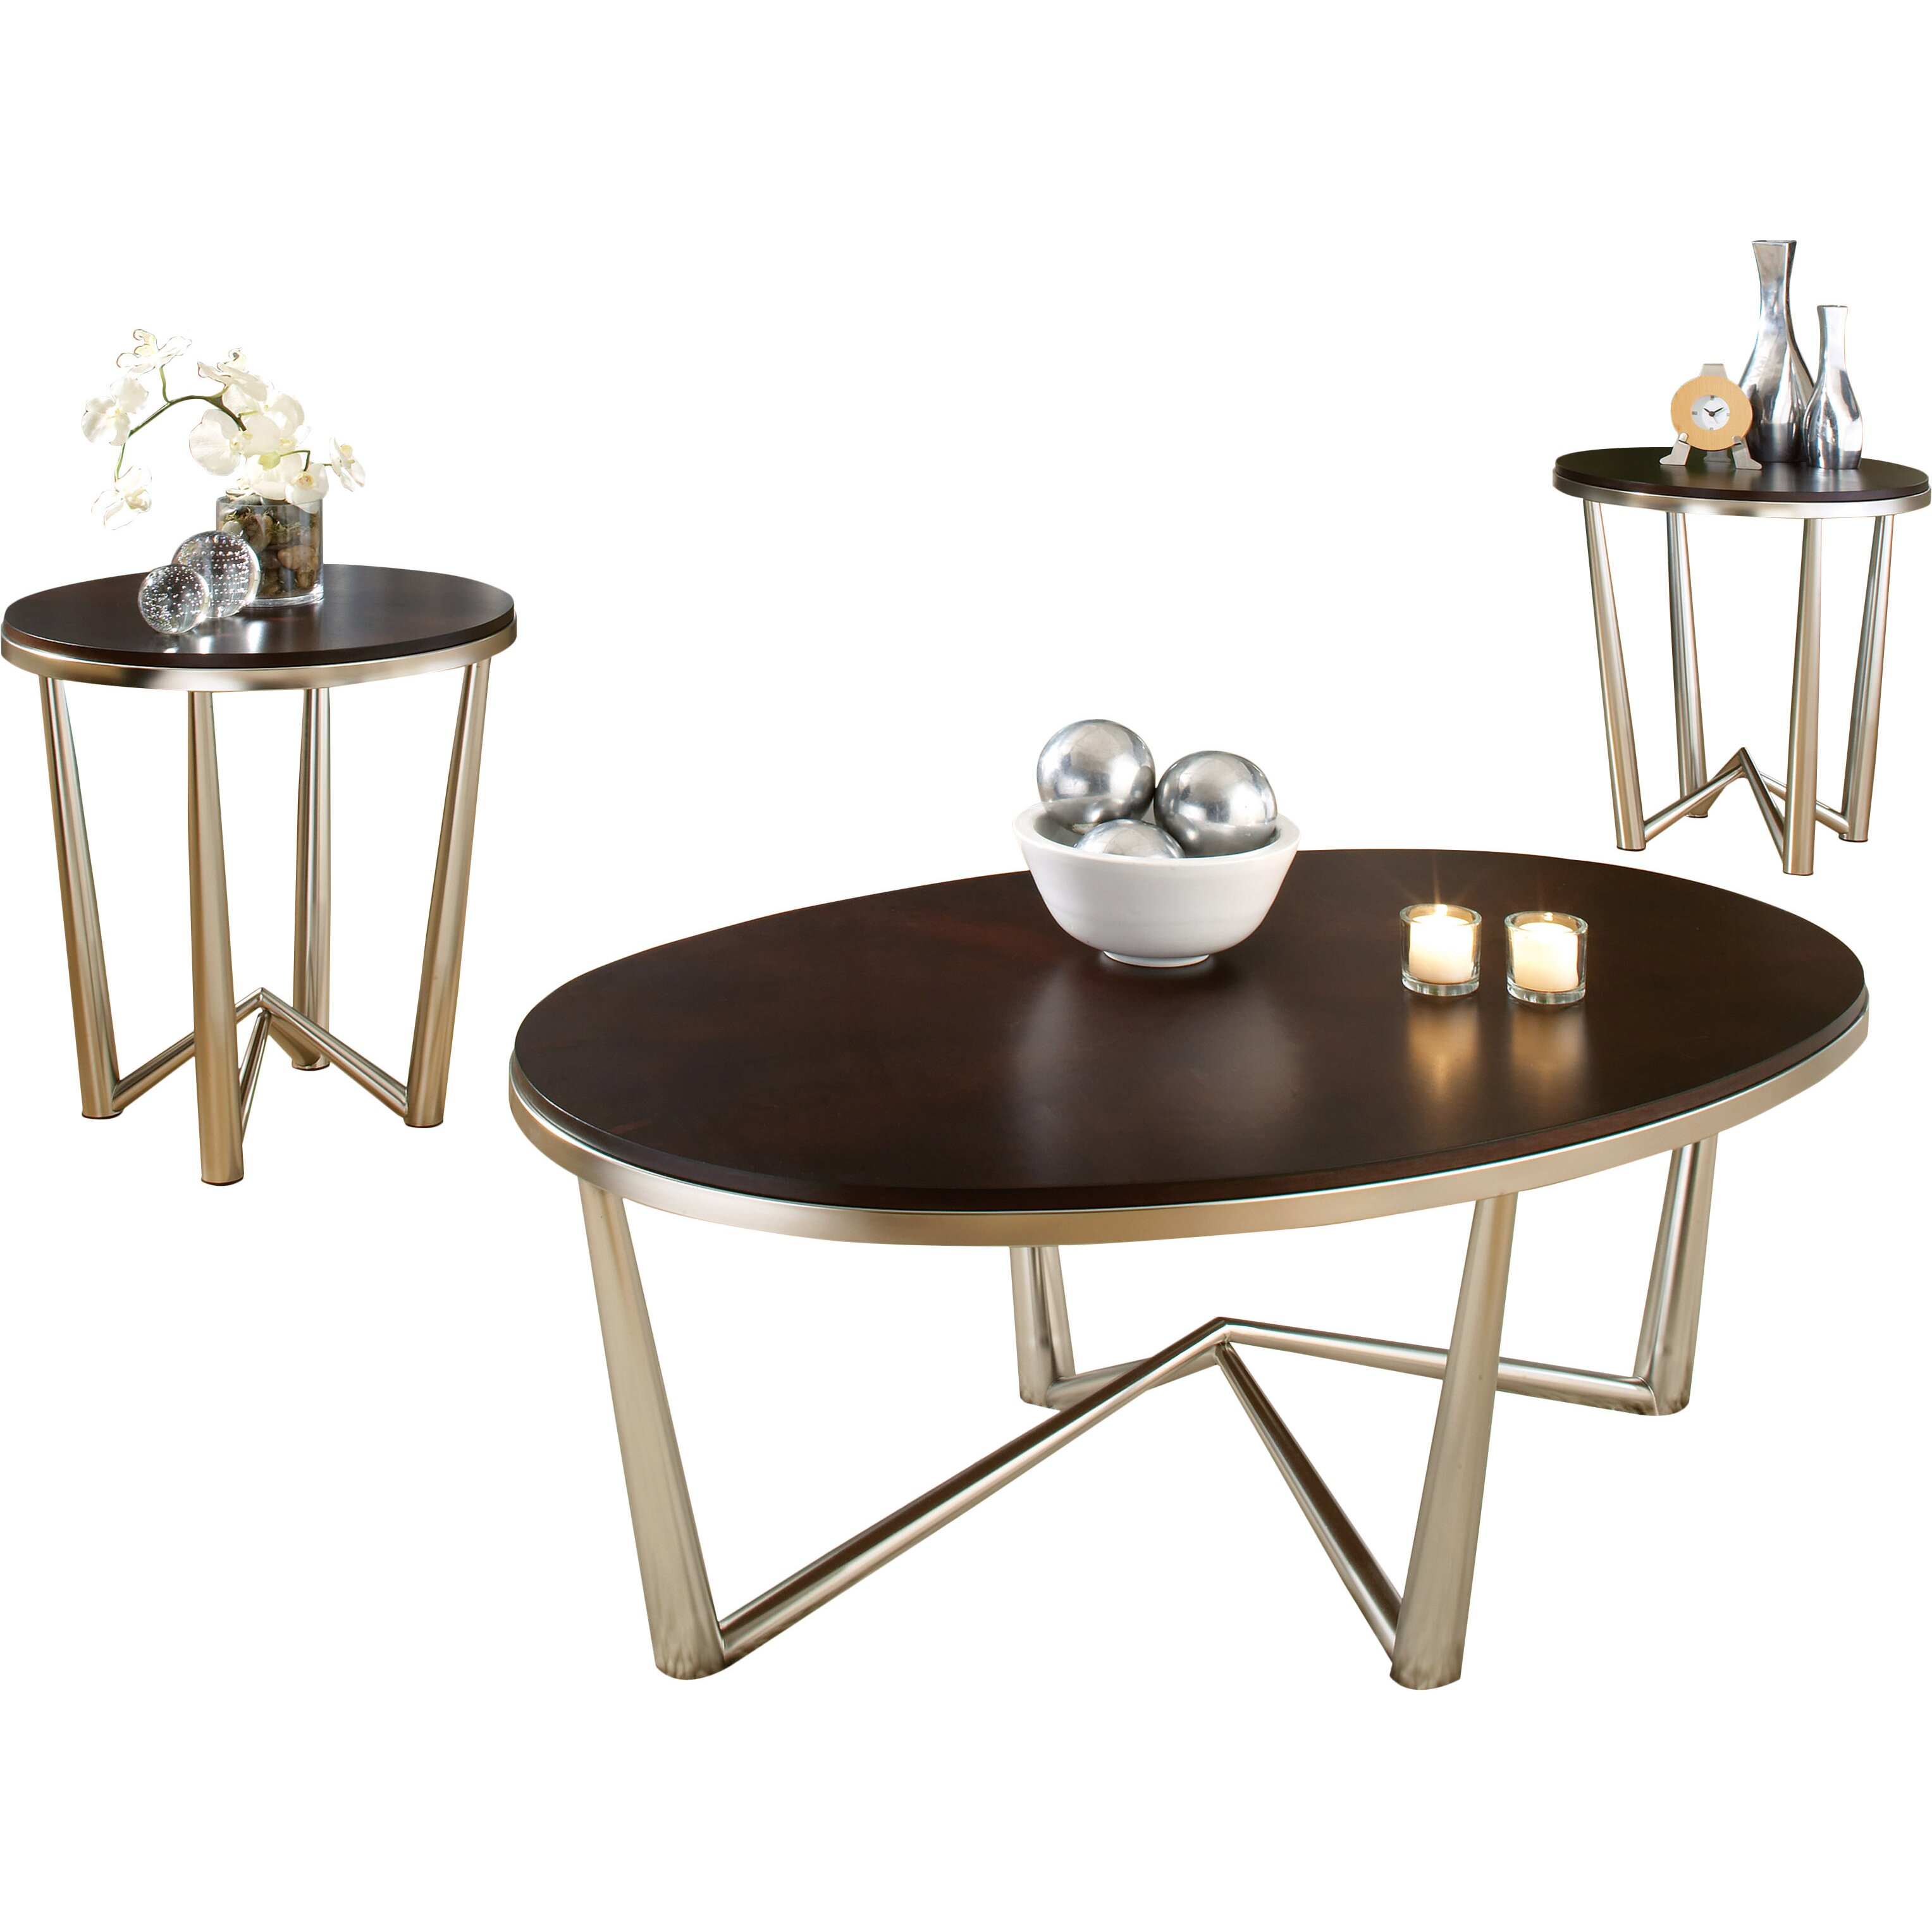 Veropeso 3 Piece Coffee Table Set: Latitude Run Cindy 3 Piece Coffee Table Set & Reviews